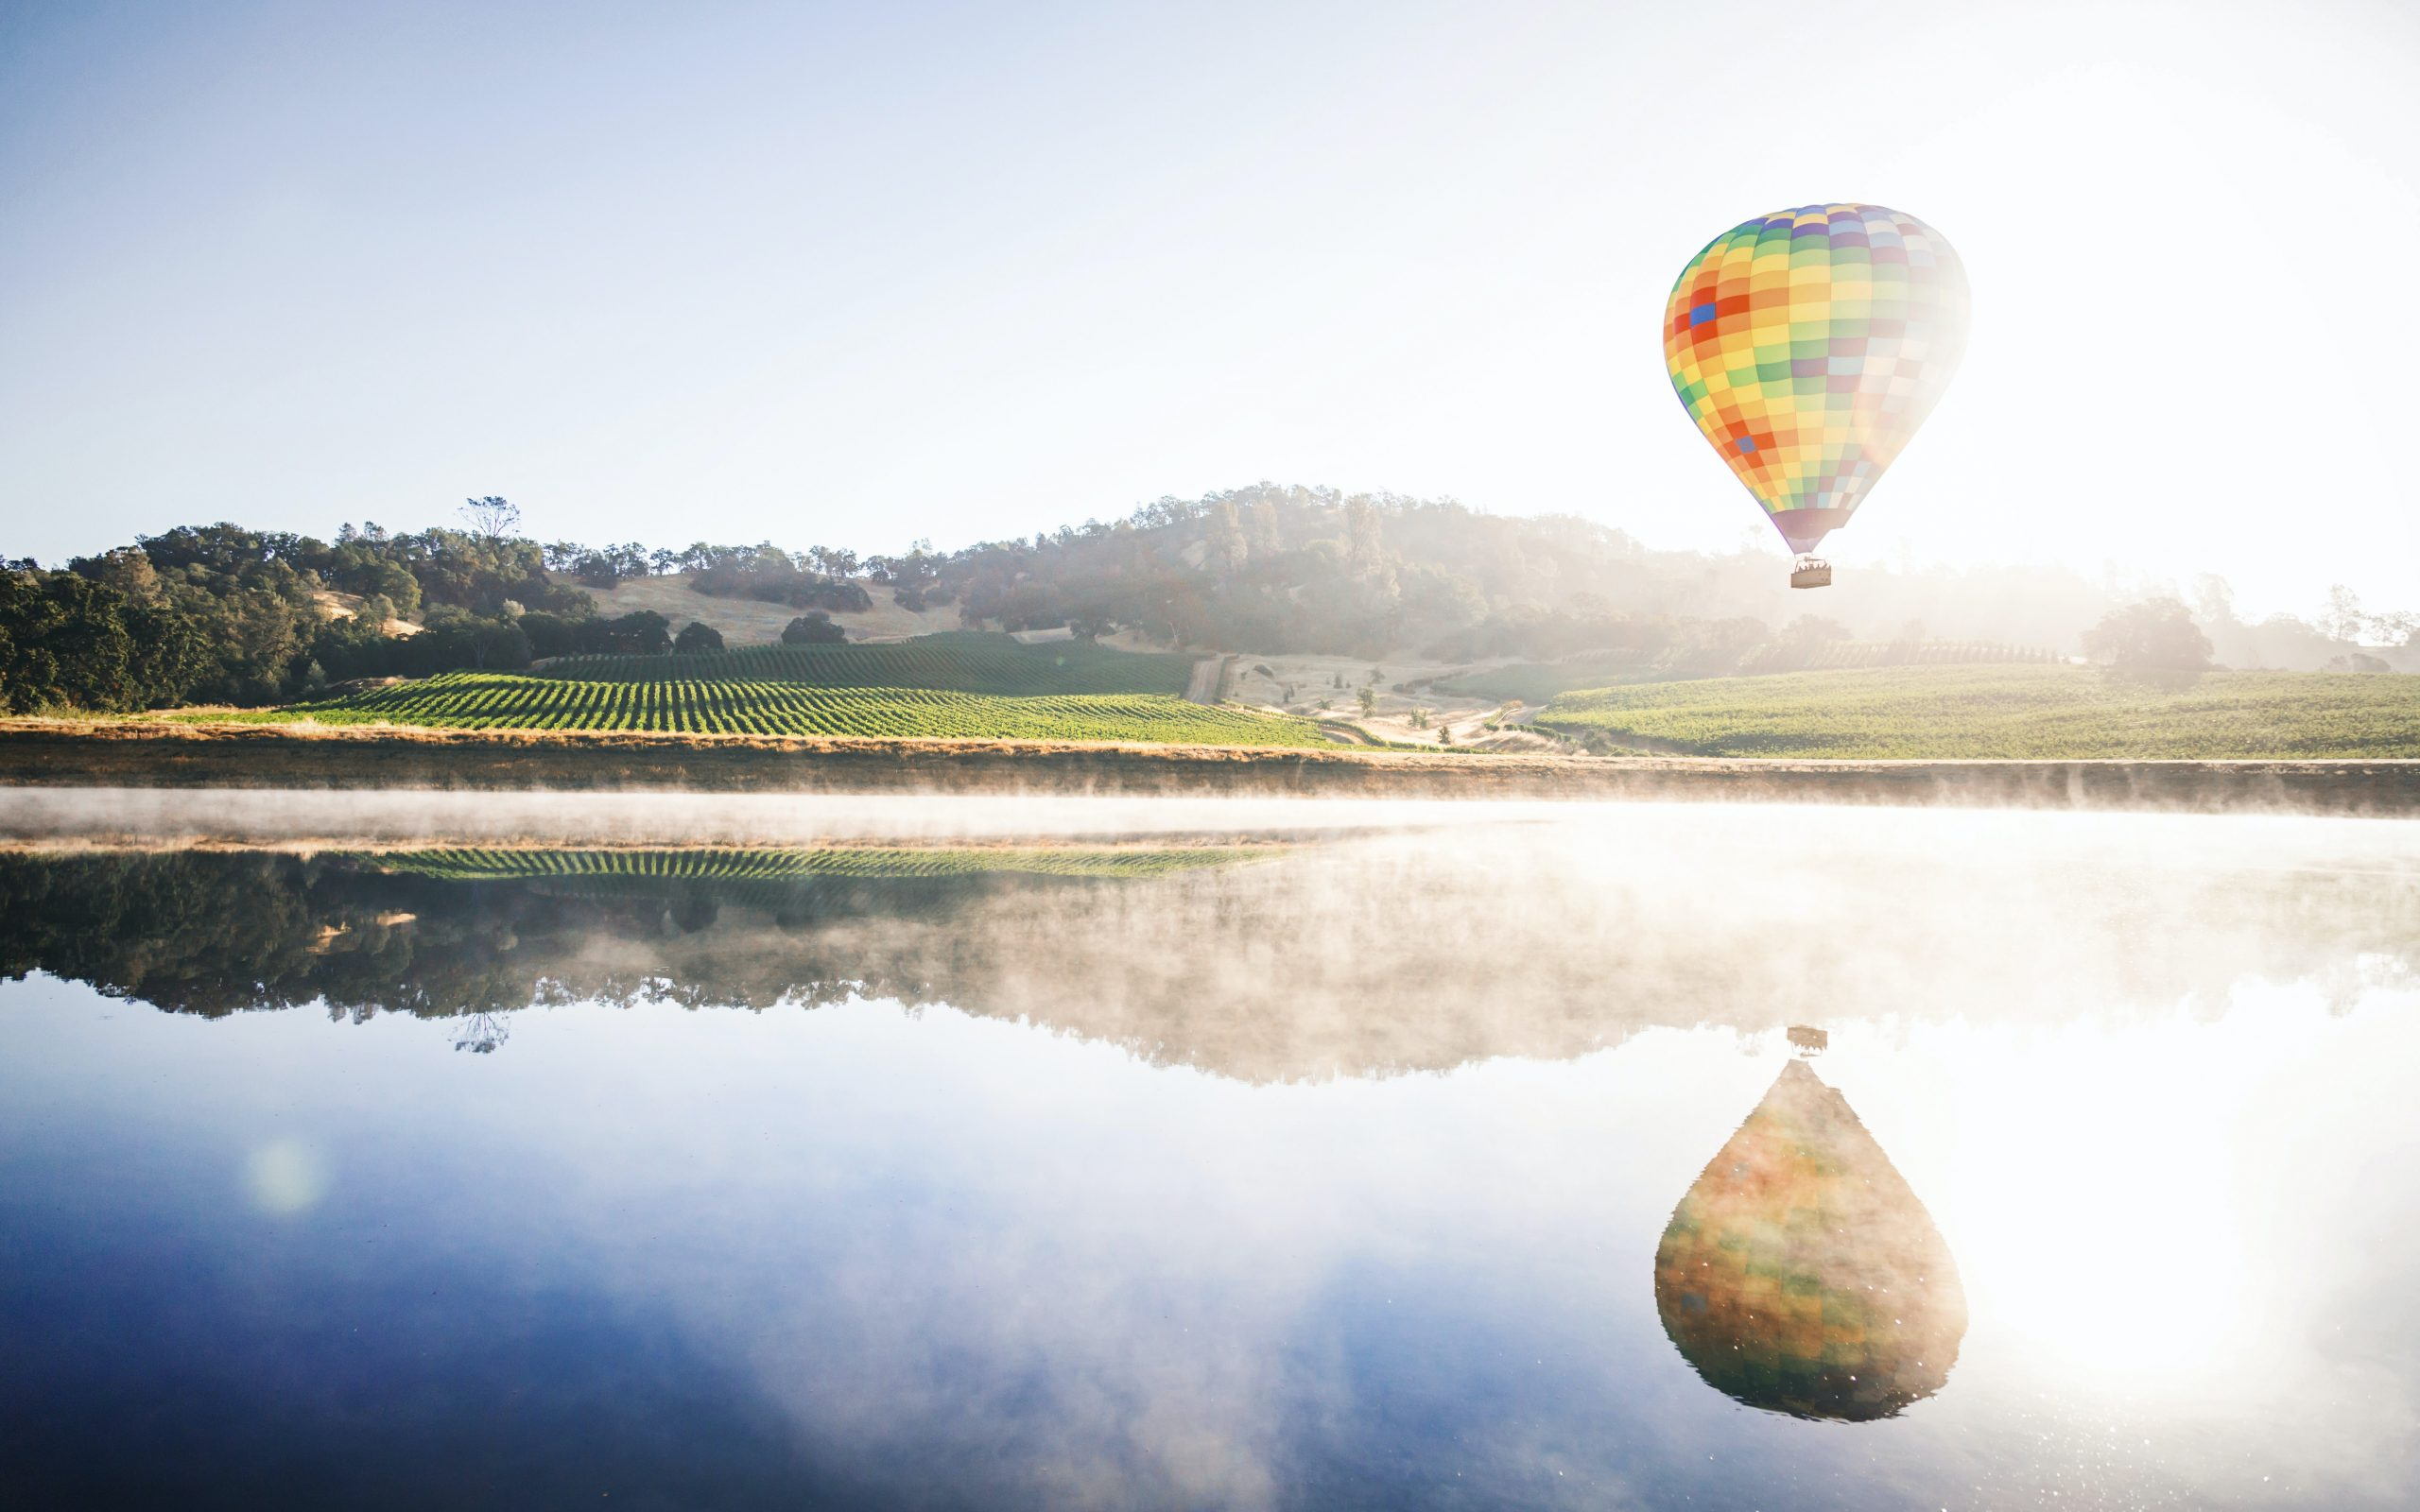 California Wine Country: AirBnB's for a Romantic Getaway in Napa & Sonoma